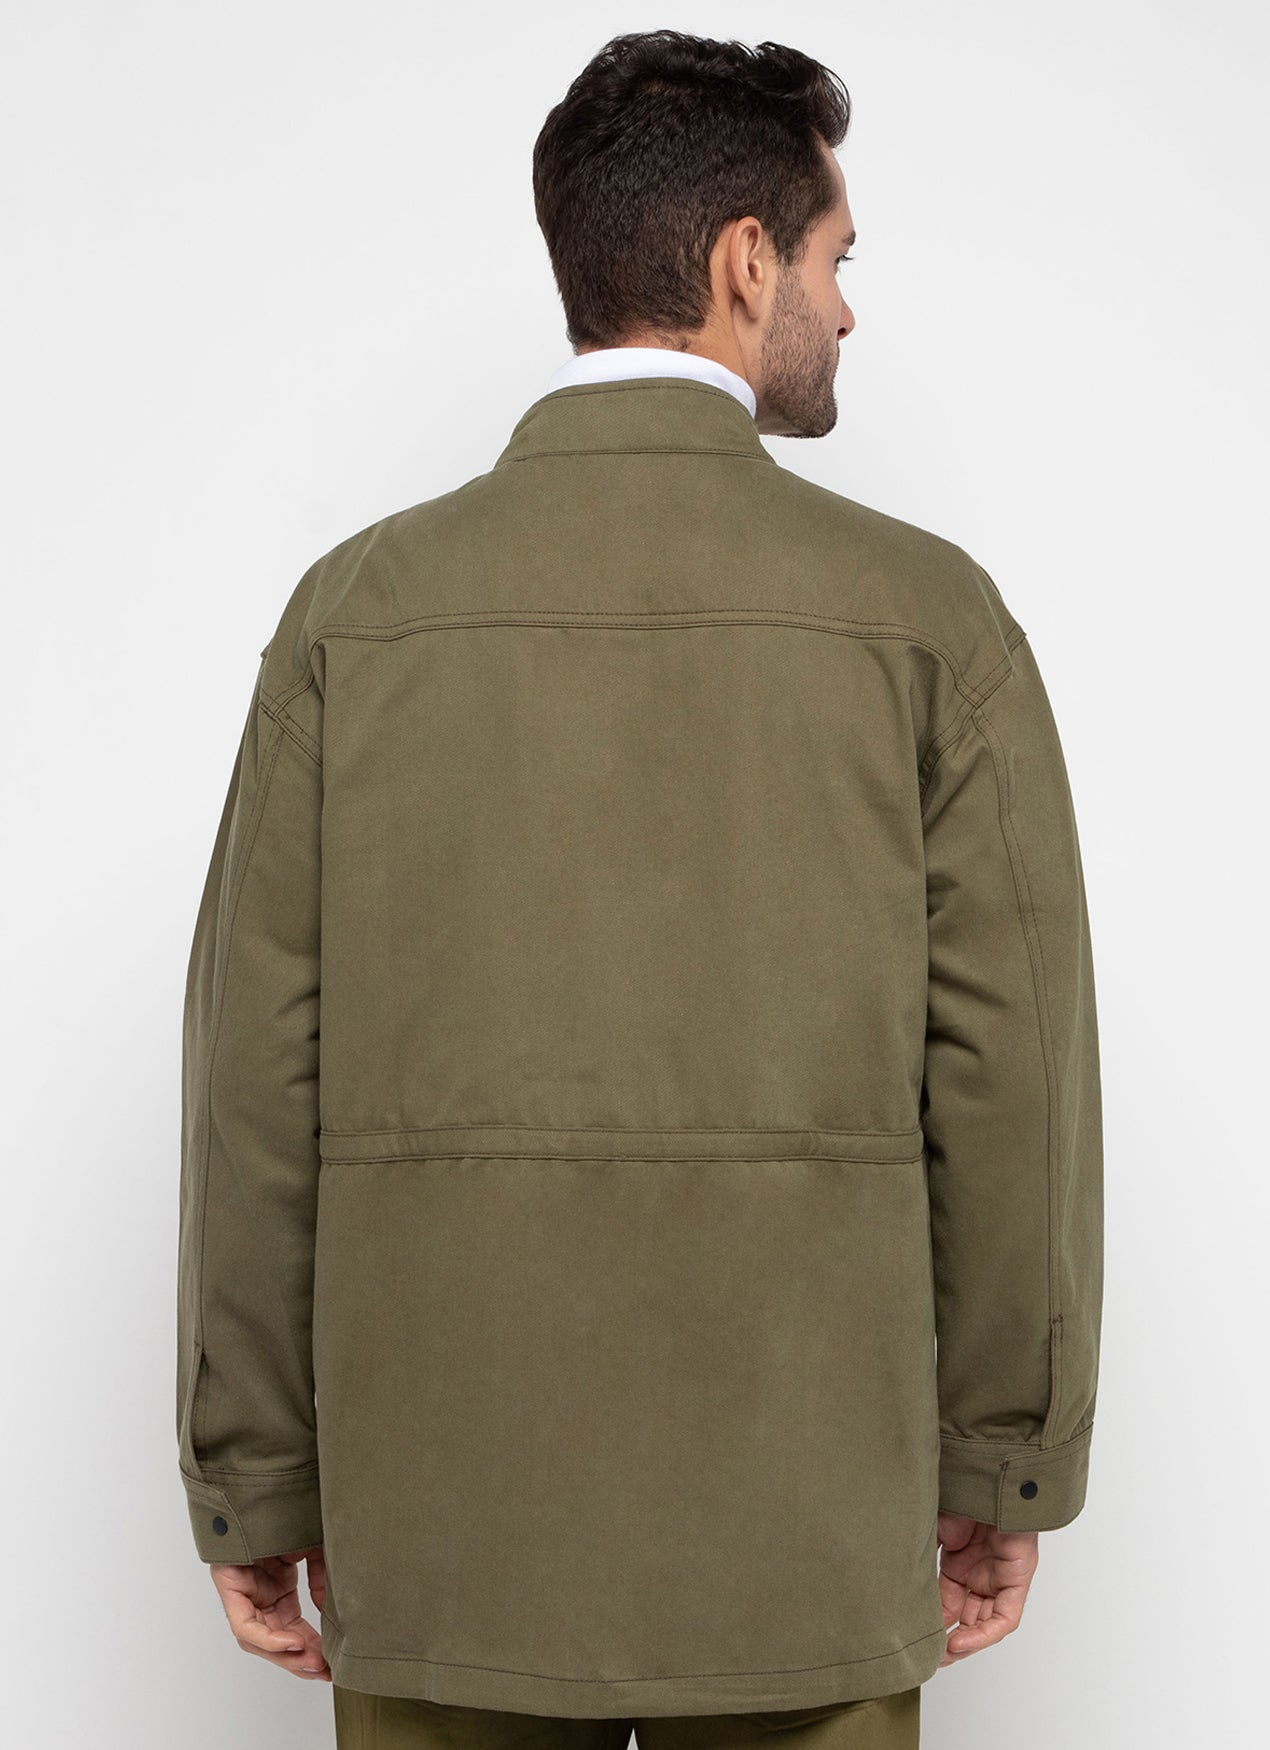 Army Parka Jacket